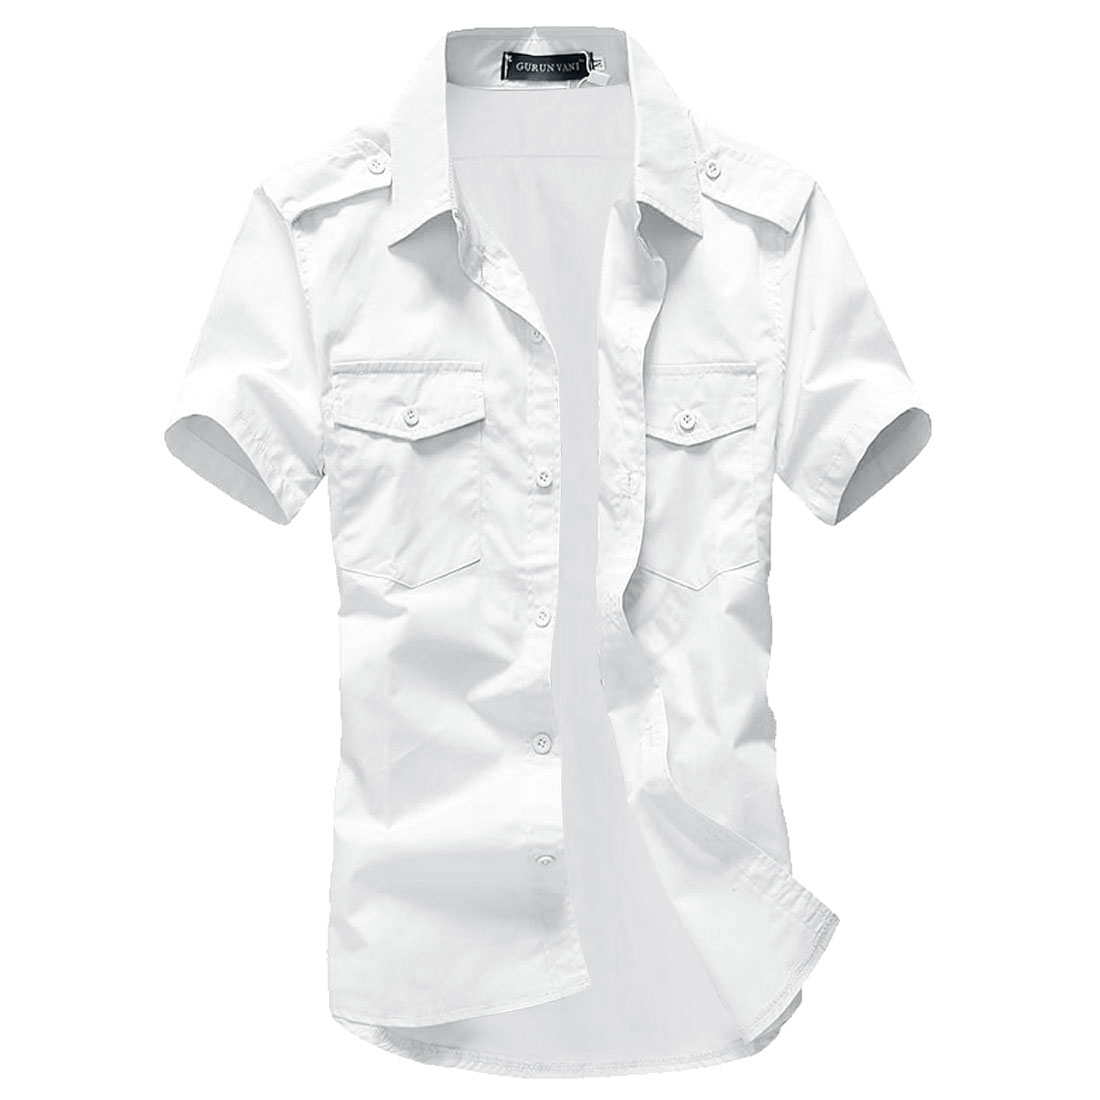 Man Korean Style Short Sleeves Point Collar Shirts White L